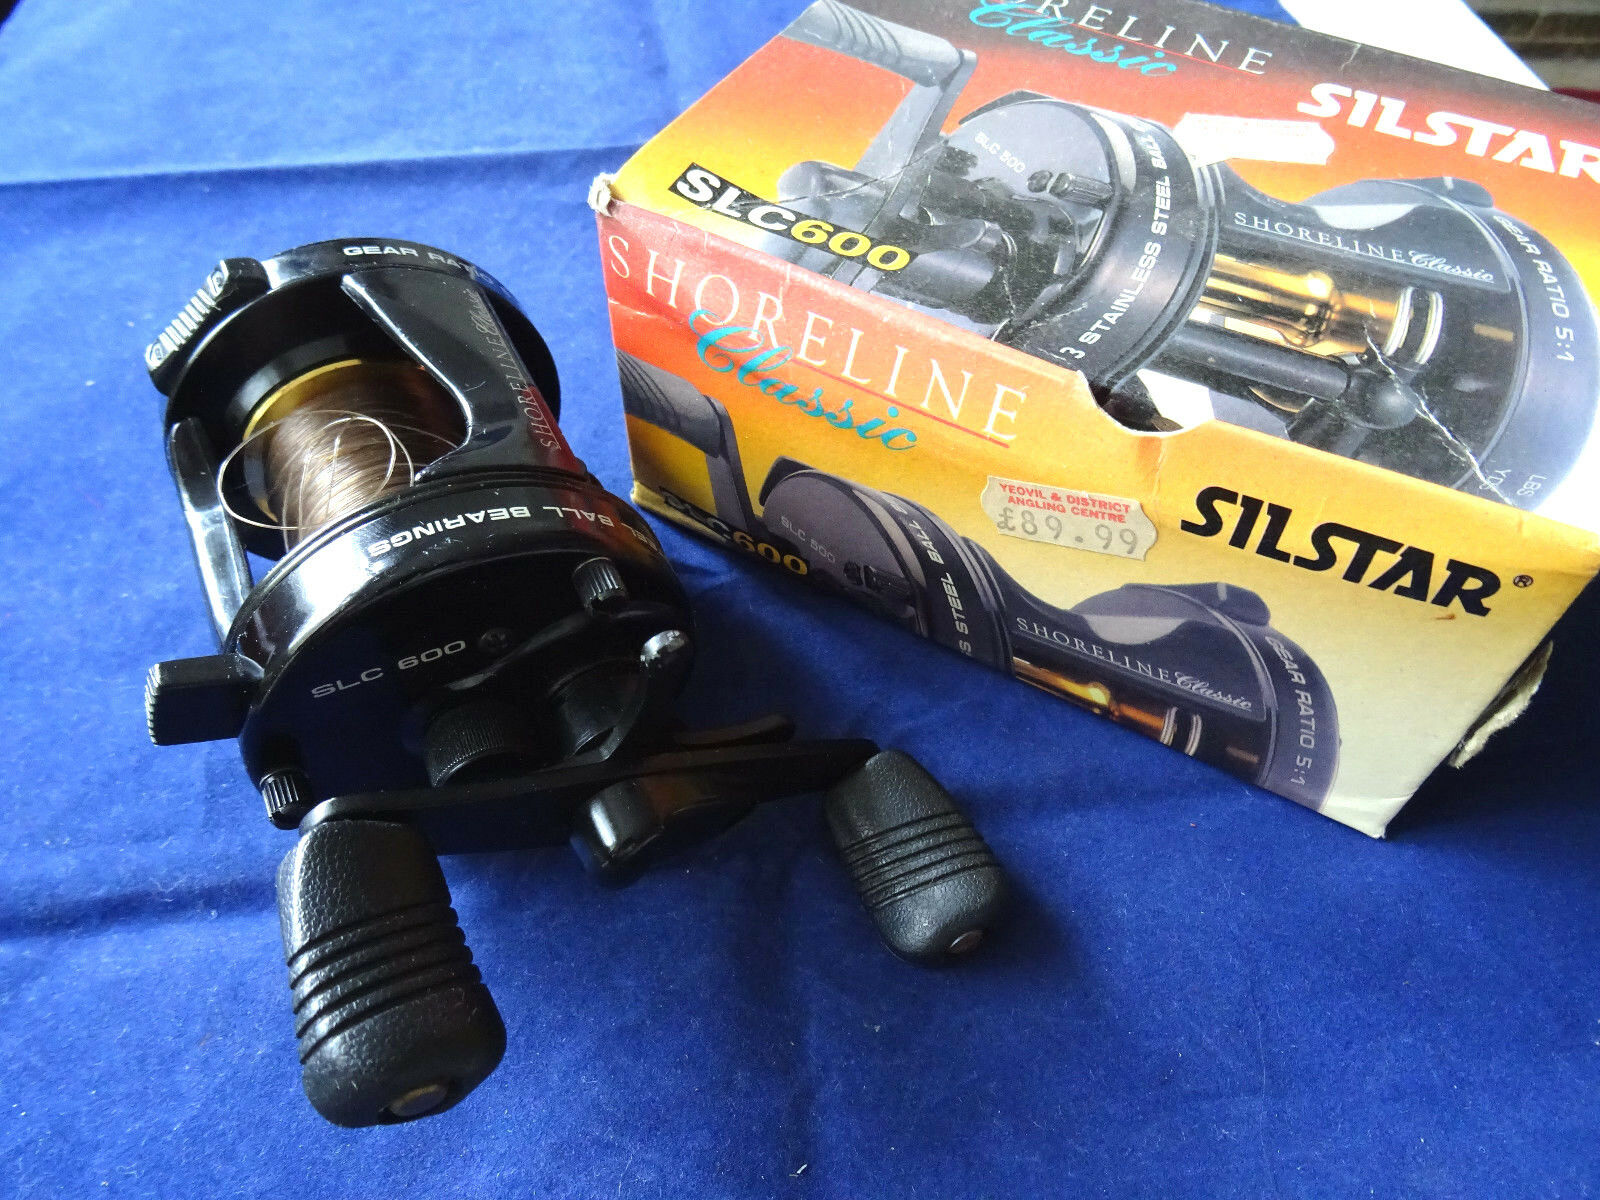 SUPER BOXED SILSTAR SHORELINE CLASSSIC SLC600 MULTIPLIER SEA REEL